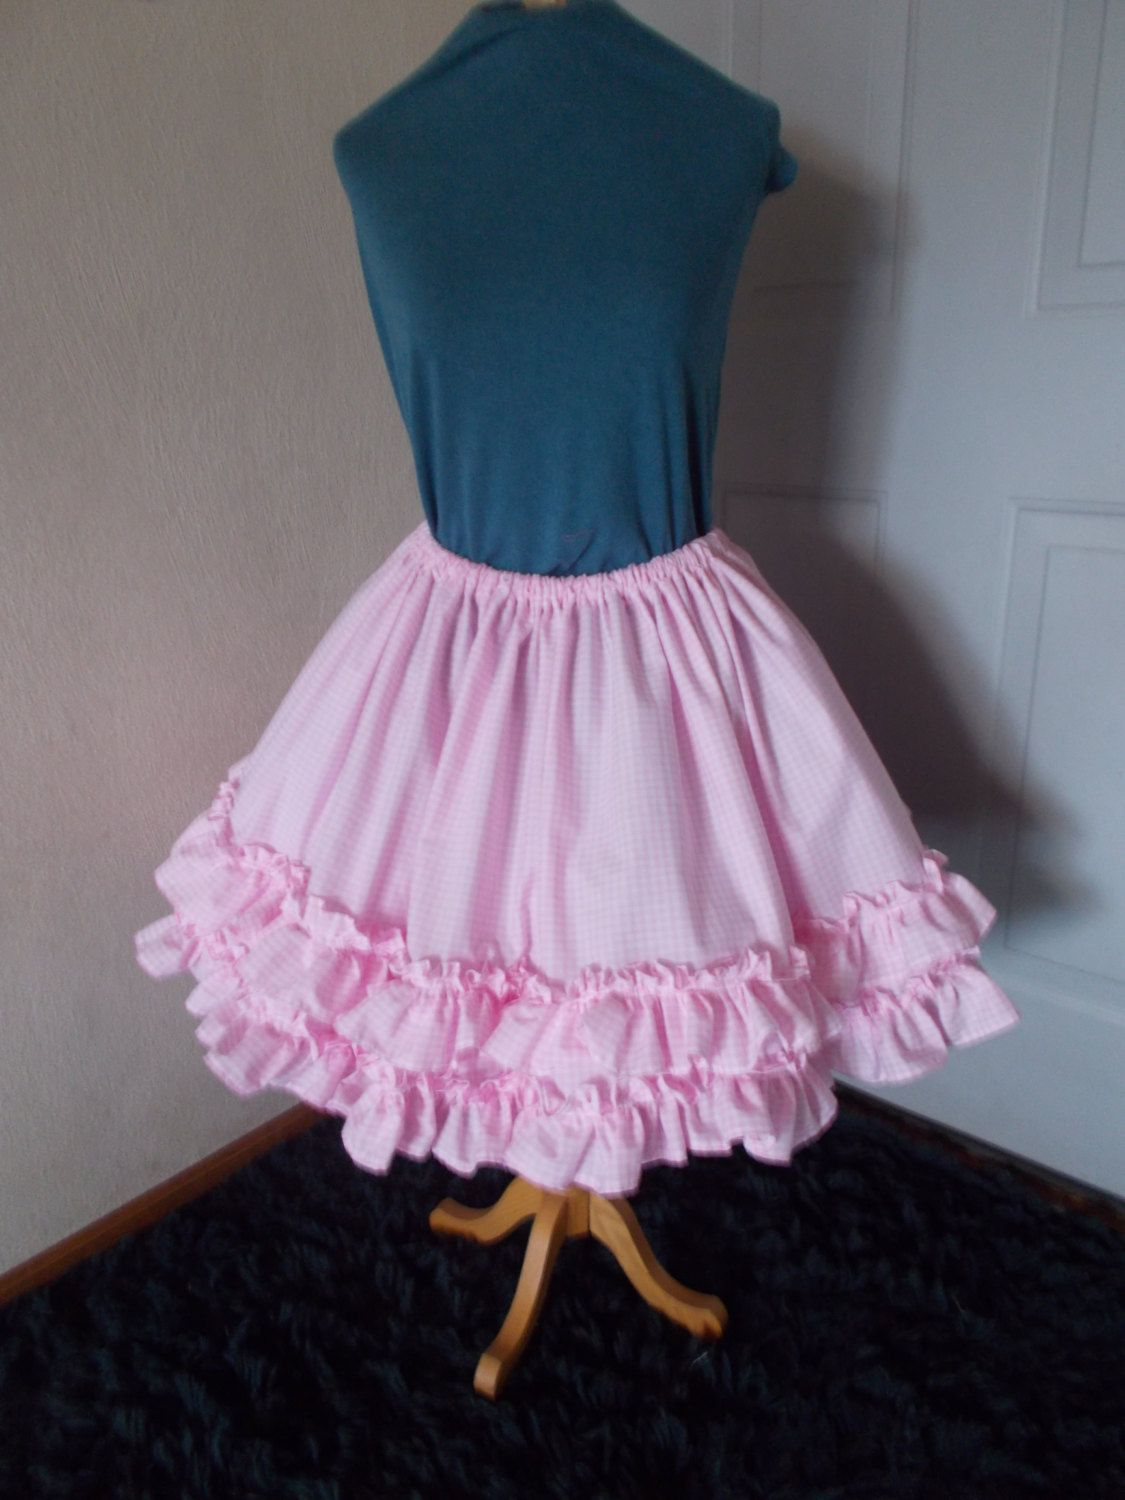 Custom Lolita Dress Skirt Cosplay Lolita Pink Cupcake Skirt Kawaii Skirt Costume. $32.00, via Etsy.